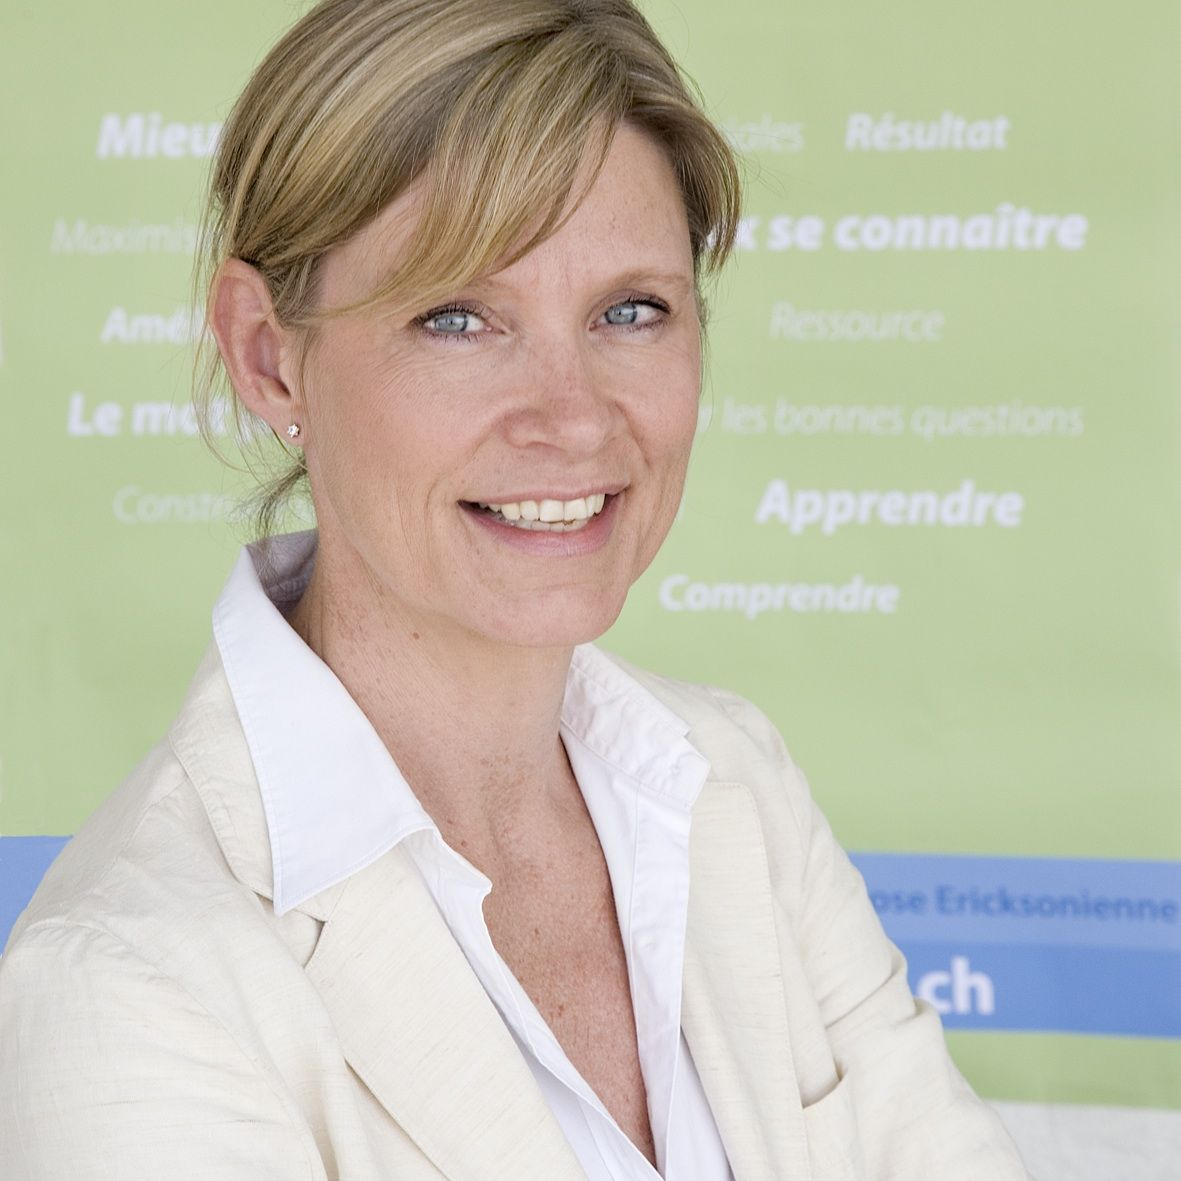 Trina Mohn Directrice et formatrice PNL/Coaching/Hypnose Ericksonienne